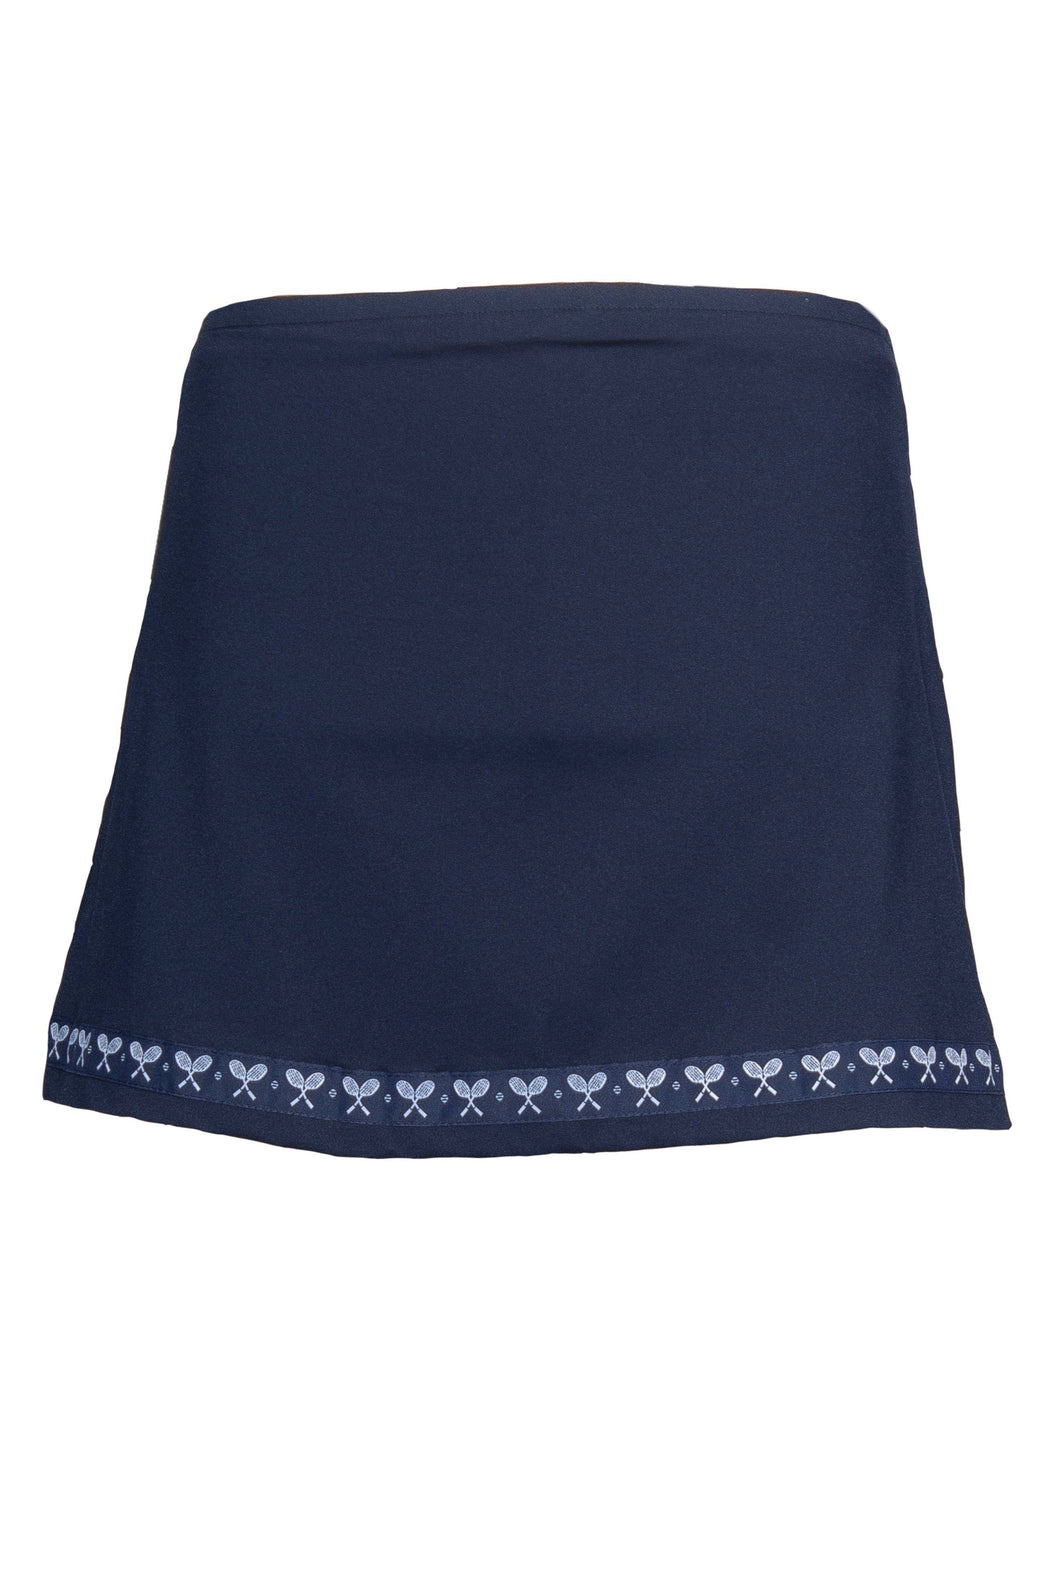 Girl's Navy Racket Club Skort